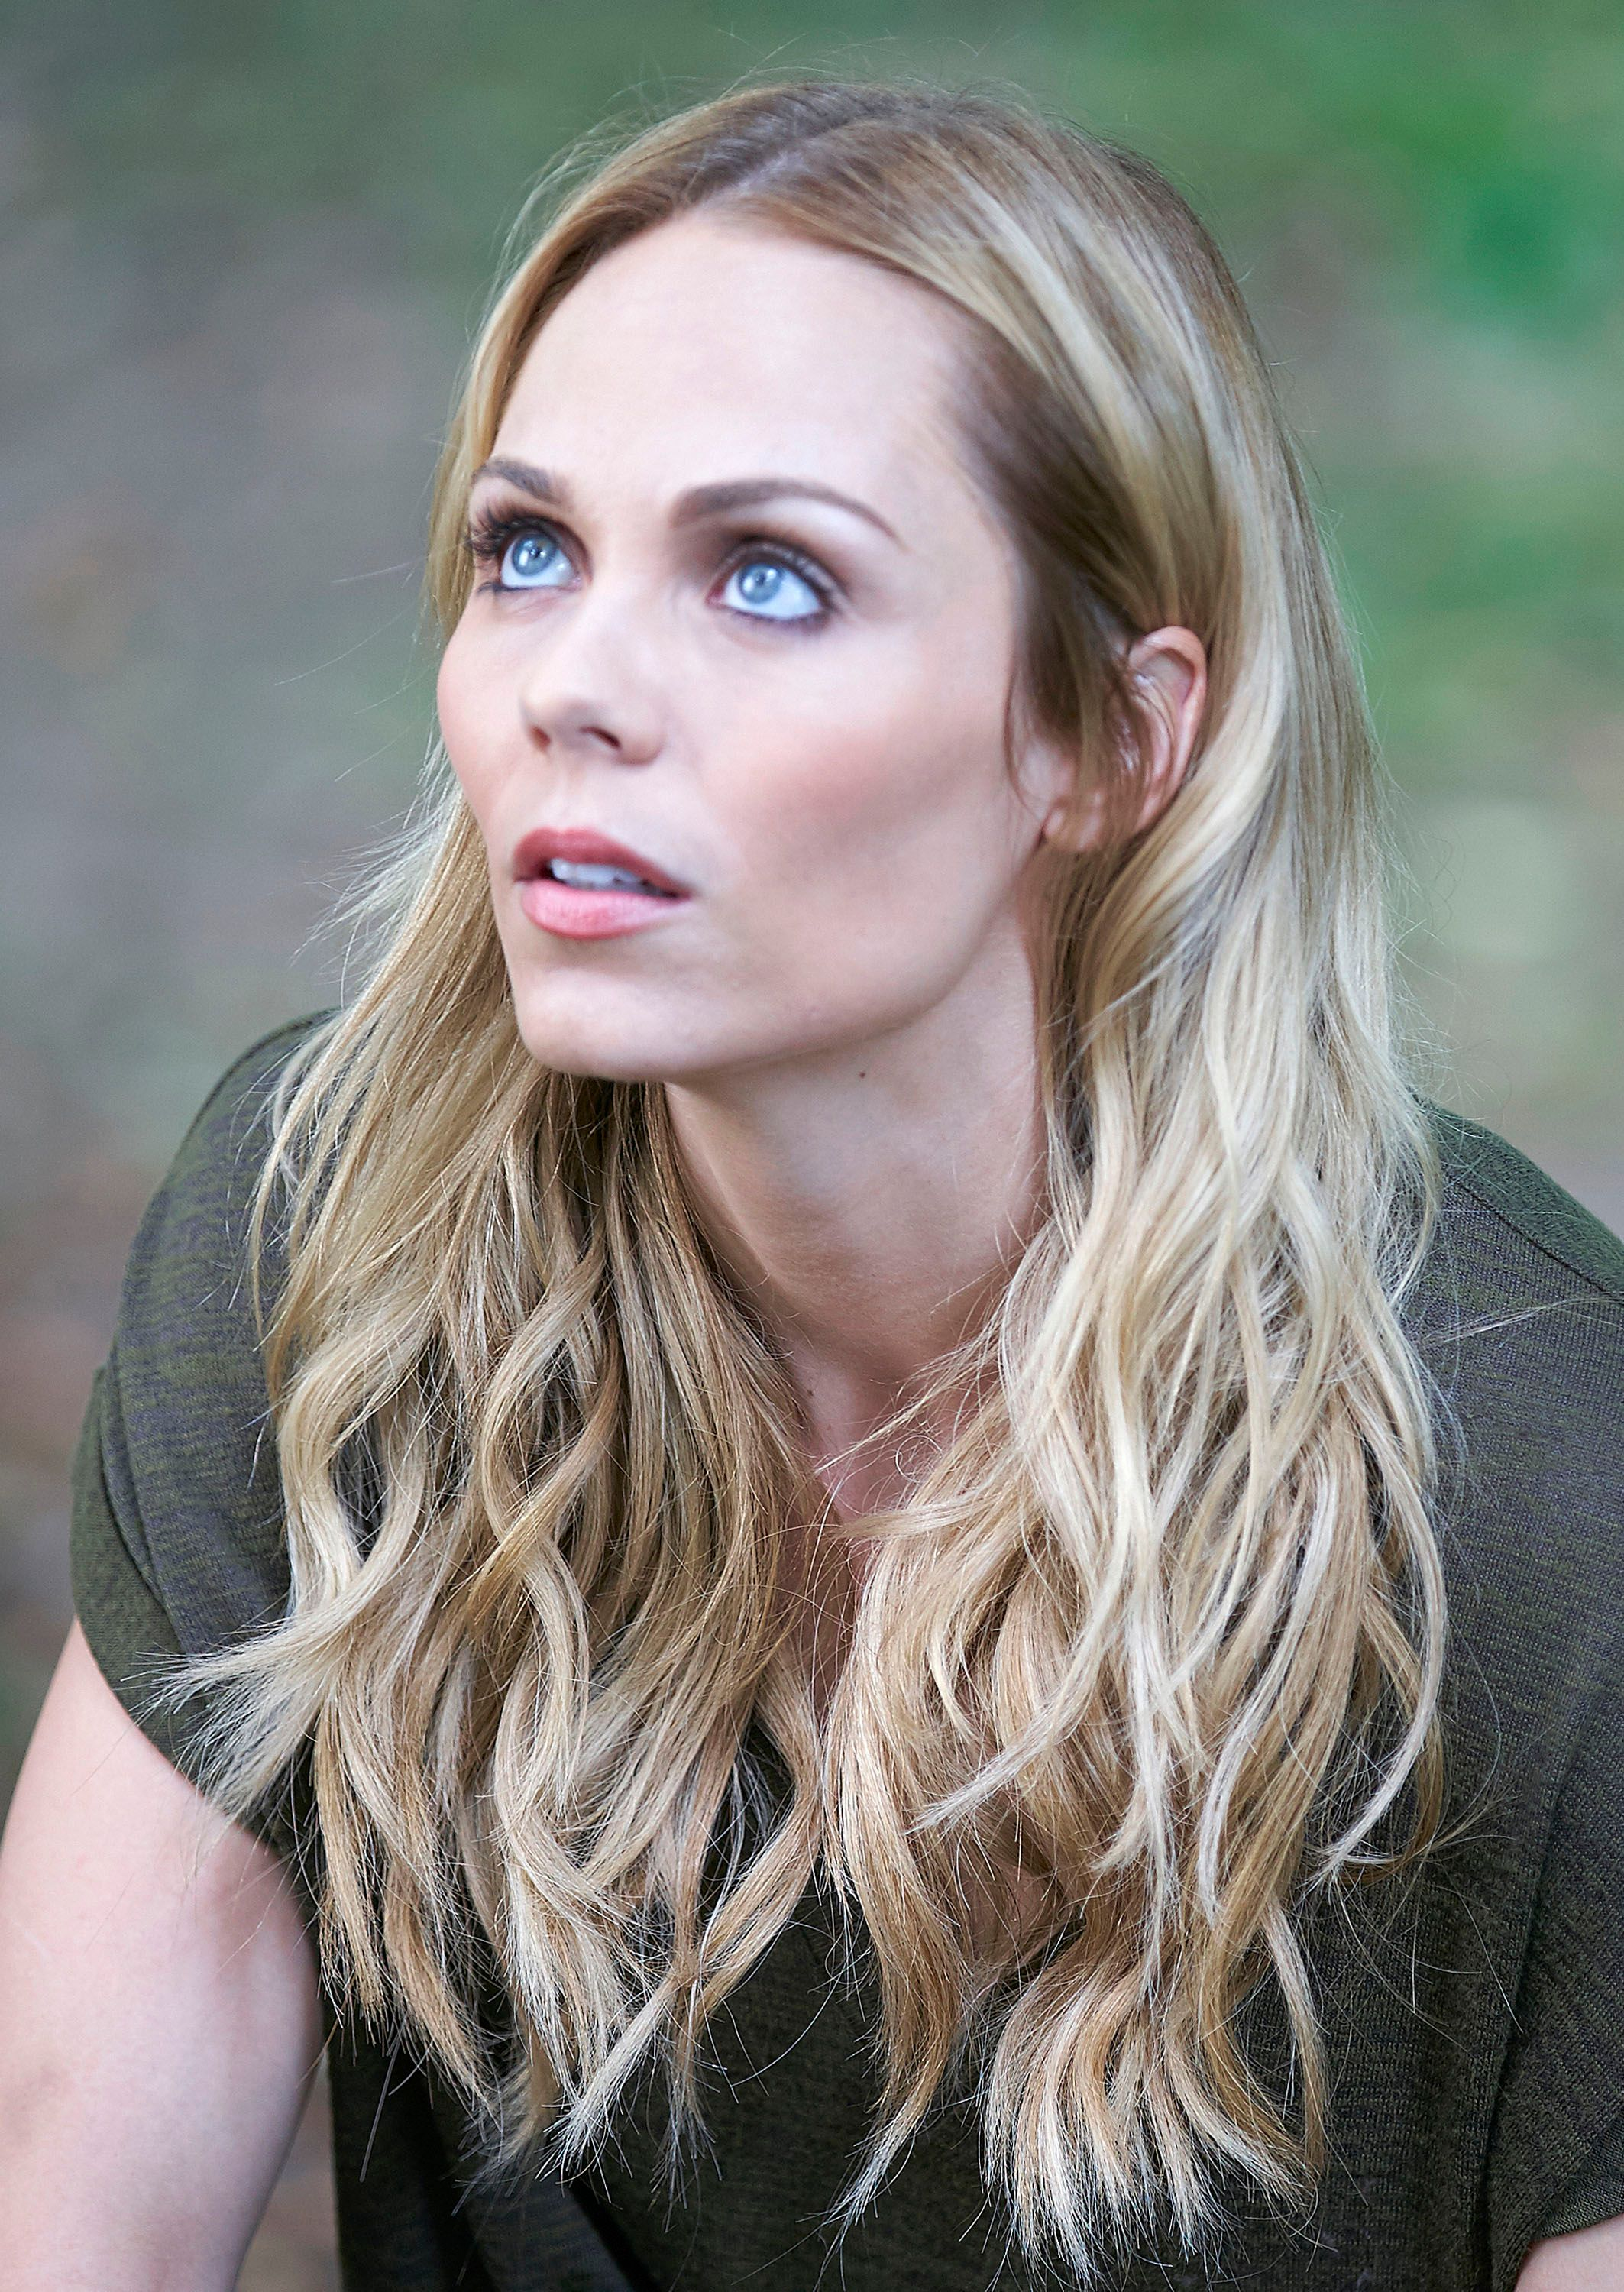 Laura Vandervoort earned a  million dollar salary - leaving the net worth at 5 million in 2017